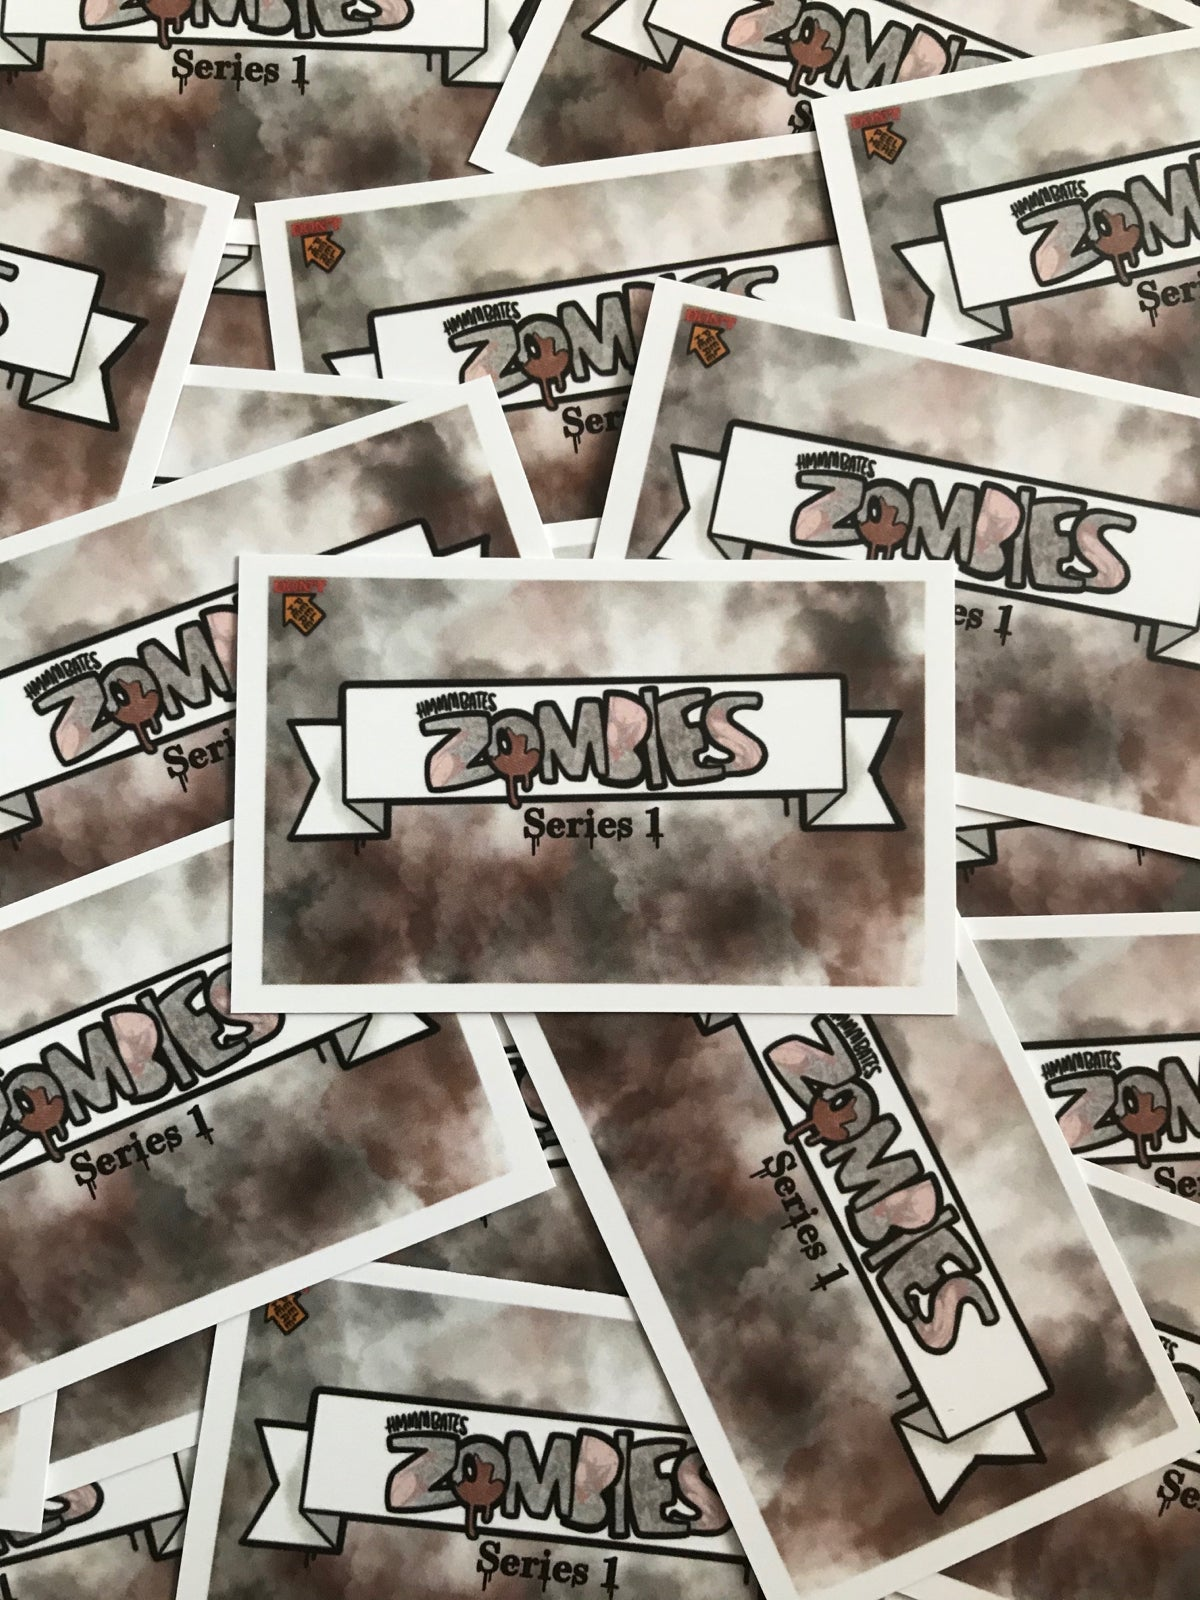 Image of Hmmmbates zombie cards series 1